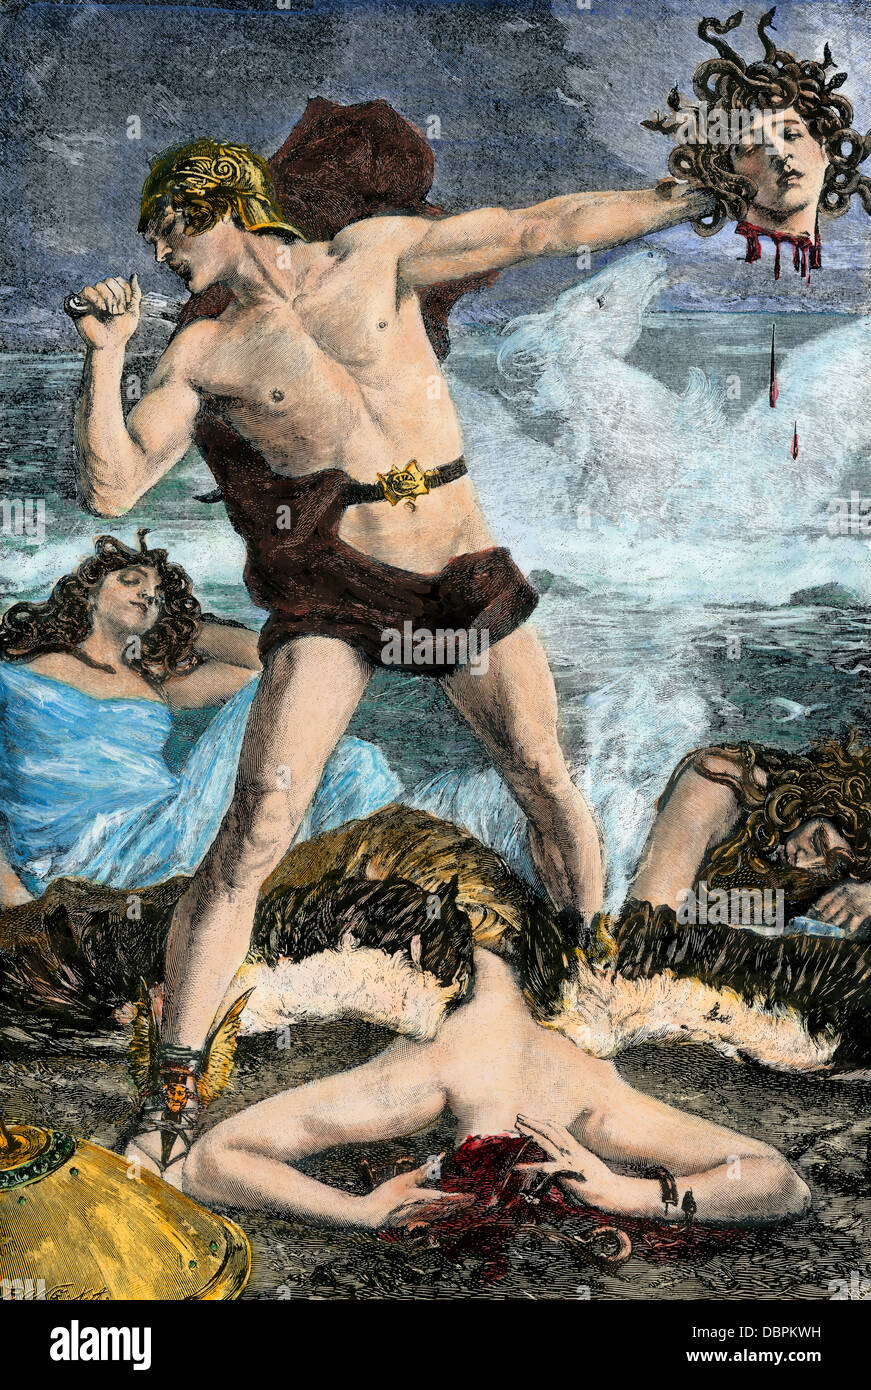 Perseus cutting off Medusa's snake-haired head, in Greek mythology. Hand-colored woodcut - Stock Image